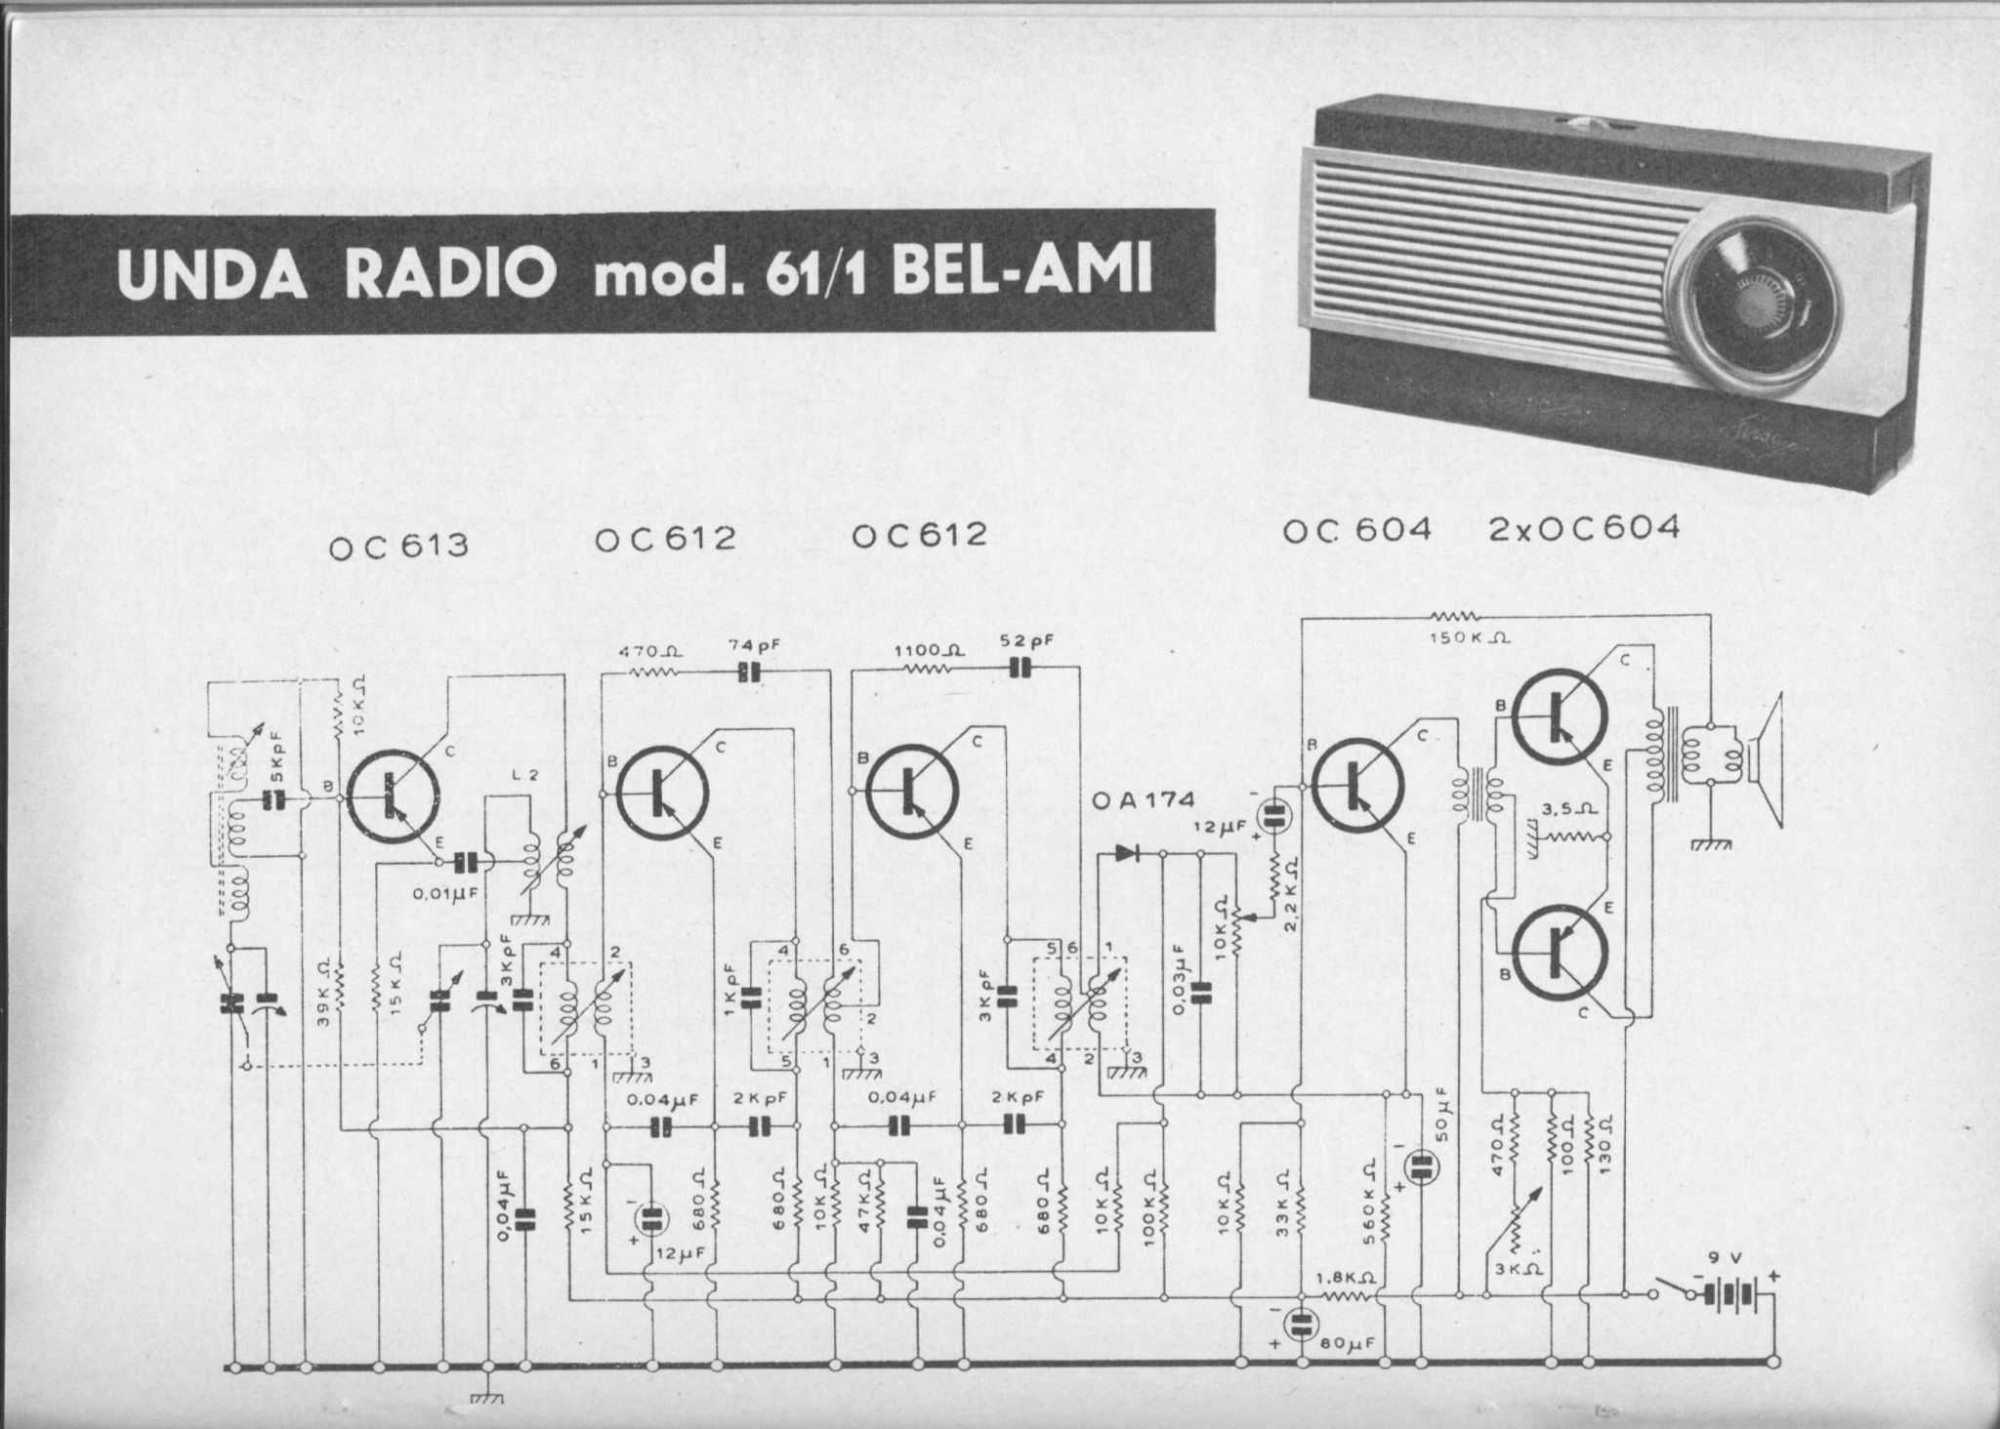 hight resolution of unda radio mod 61 1 bel ami